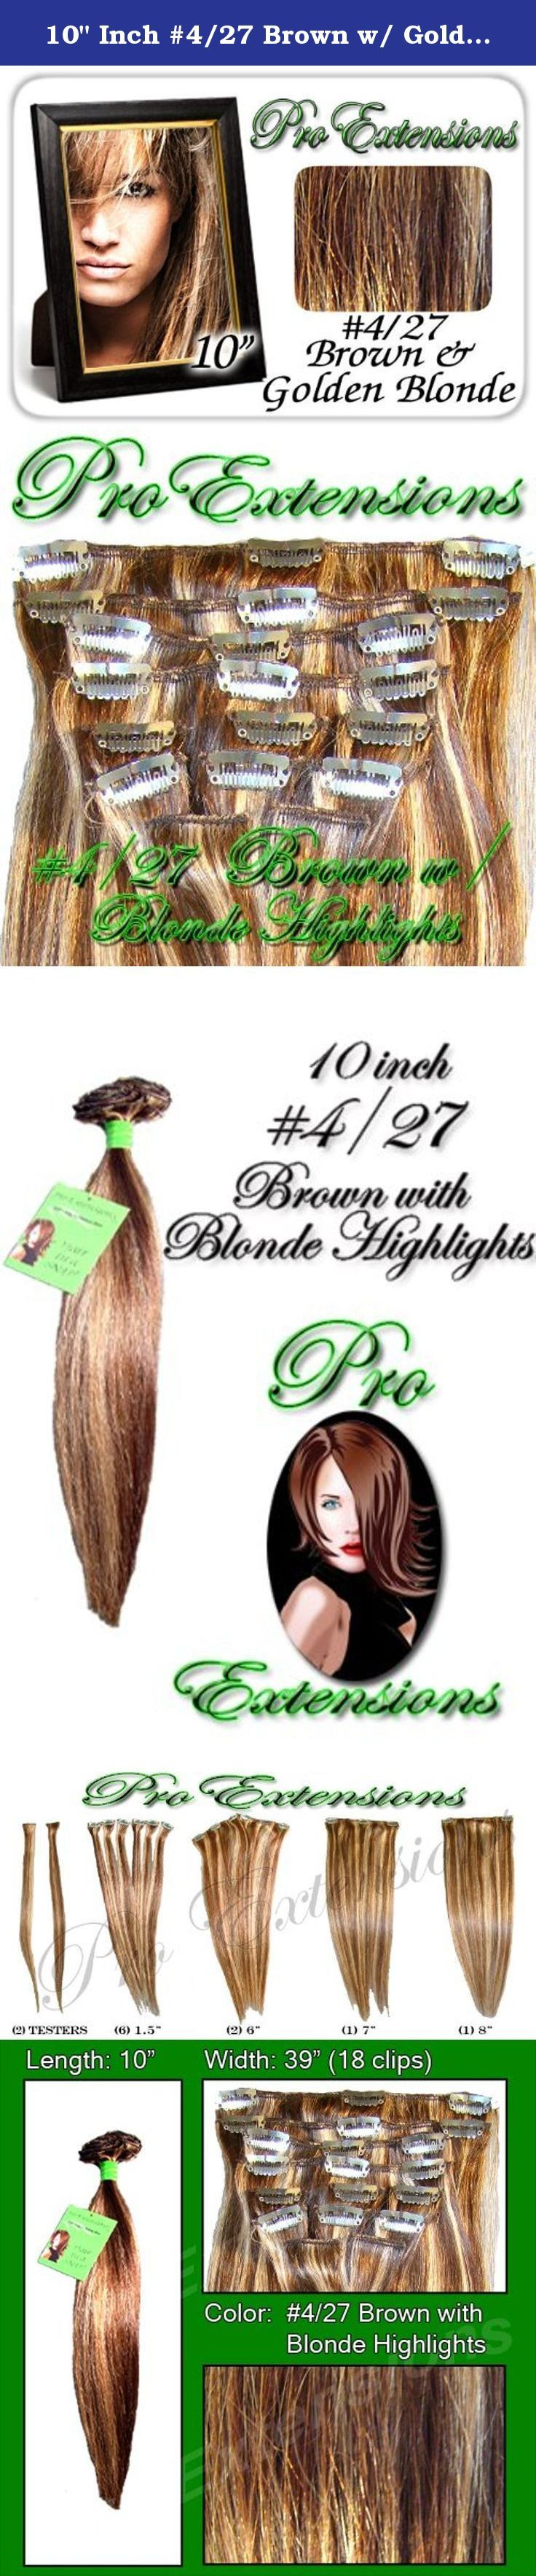 """10"""" Inch #4/27 Brown w/ Golden Blonde Highlights Pro Extensions Human Hair Extensions. This Pro Extensions clip in hair extension set is Colored #4/27 Brown w/ Blonde Highlights. Pro Extensions are 100% human hair extensions. This set of hair extensions is 10"""" long and 39"""" wide. This hair extensions set is Grade A, Color #4/27 Brown w/ Blonde Highlights. The set weight is 50 grams. This set of extensions is straight without any body wave. Pro Extensions Volumizer is specialized to add…"""